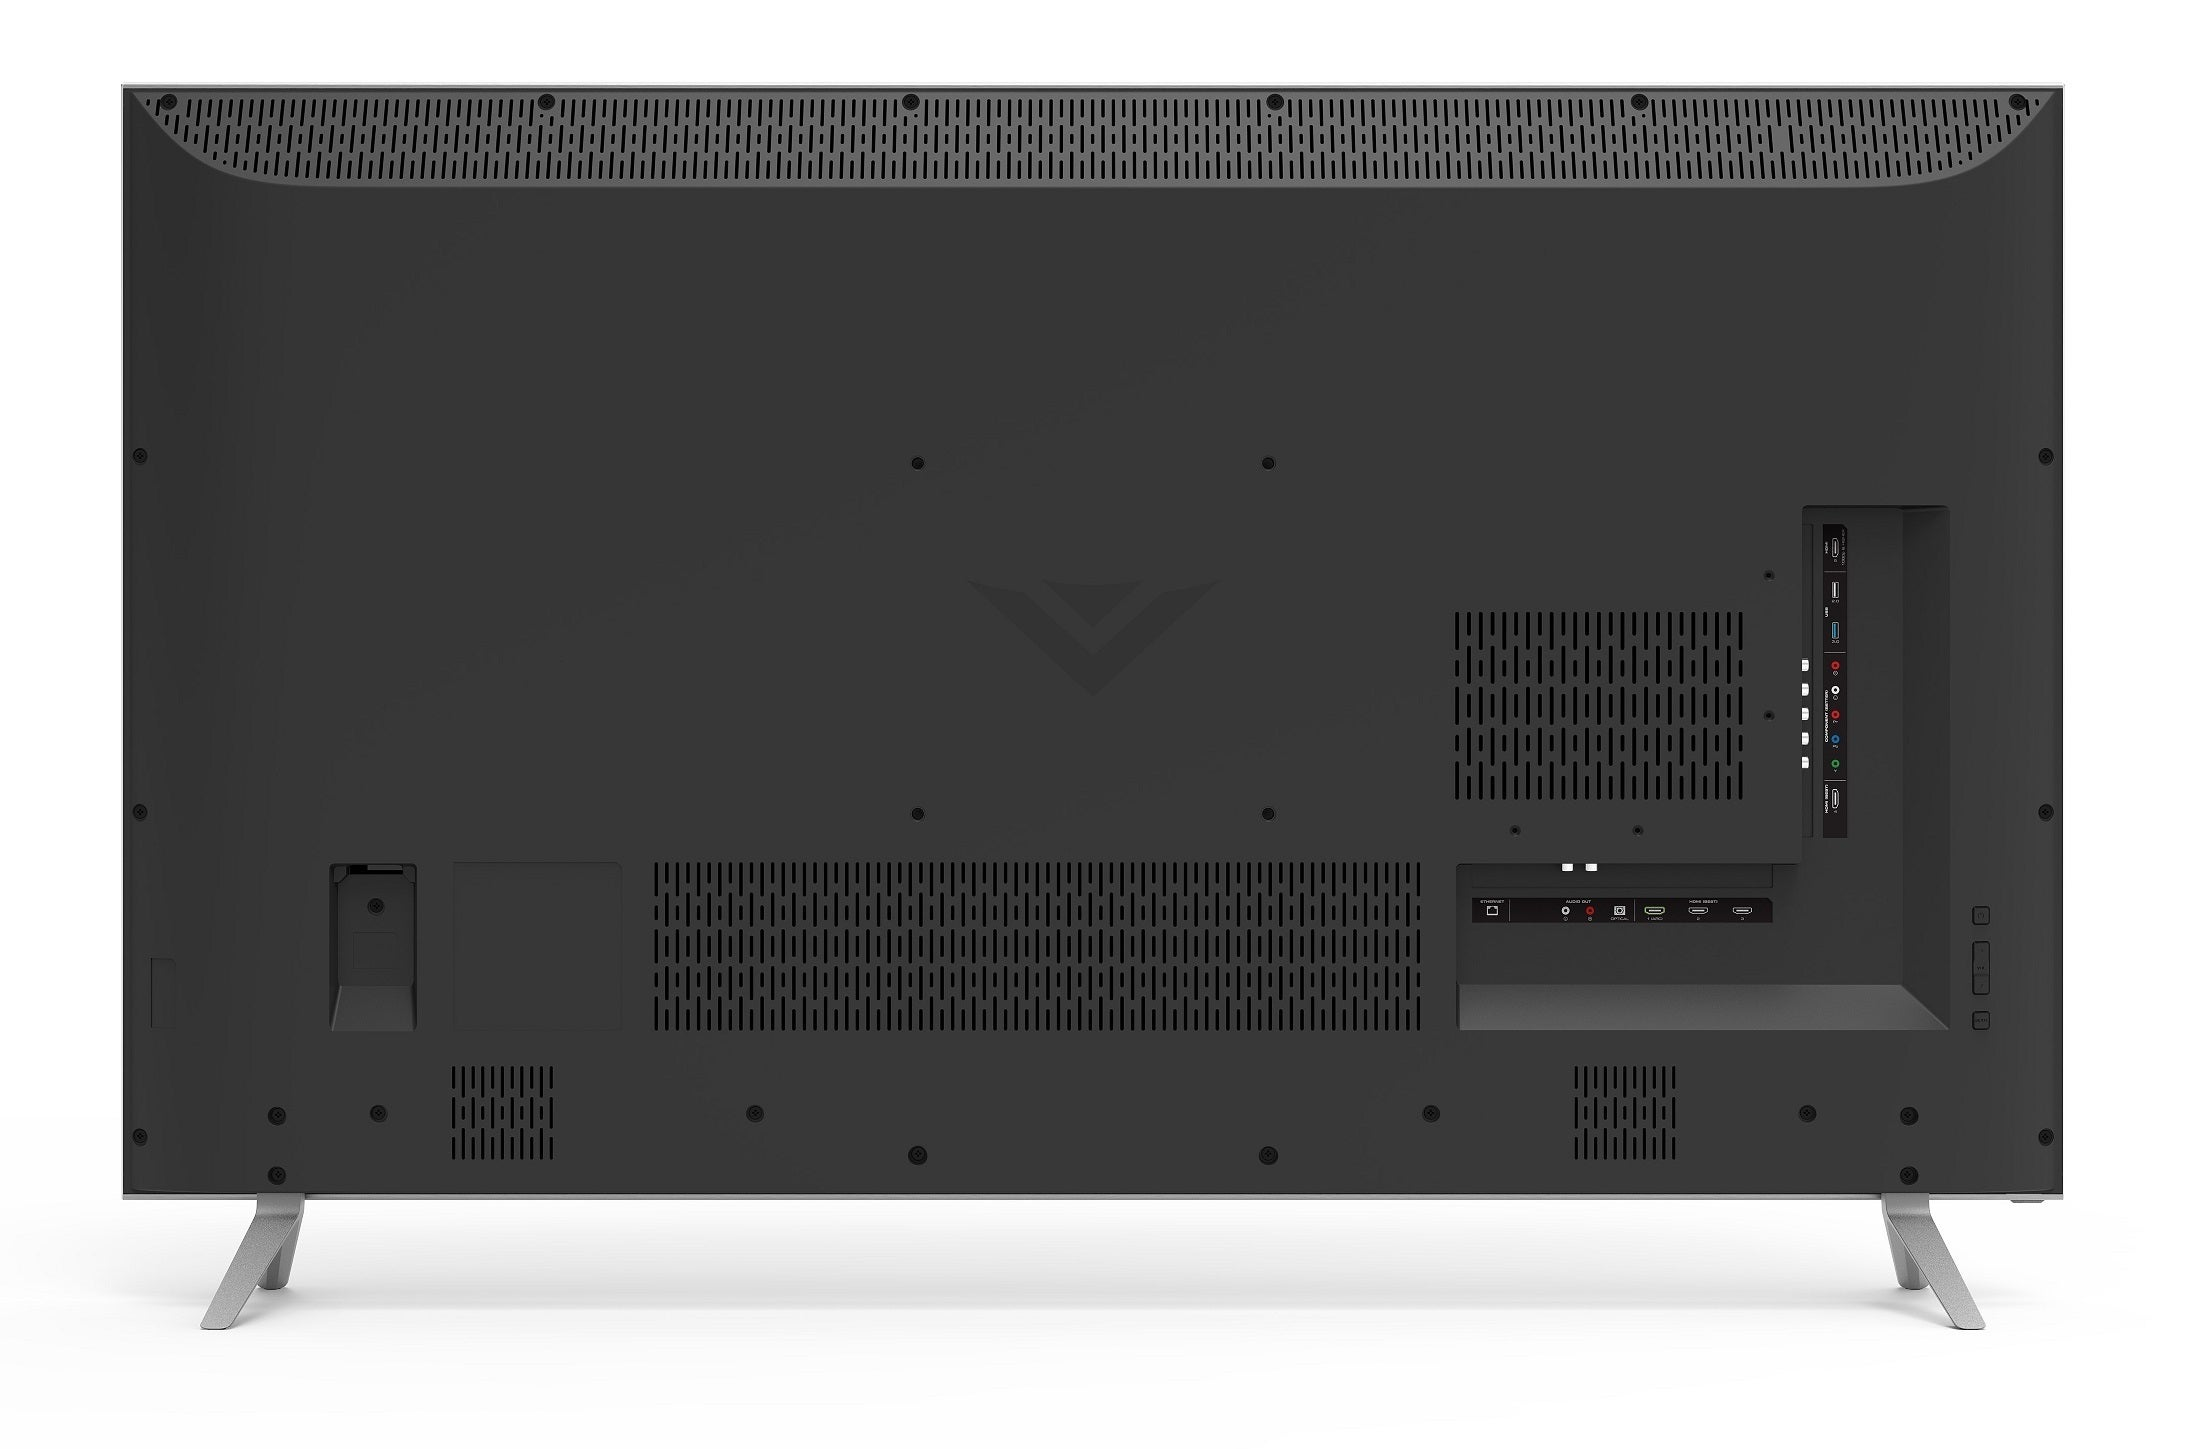 Vizio P65 C1 Review Dolby Vision Hdr And Android Remote